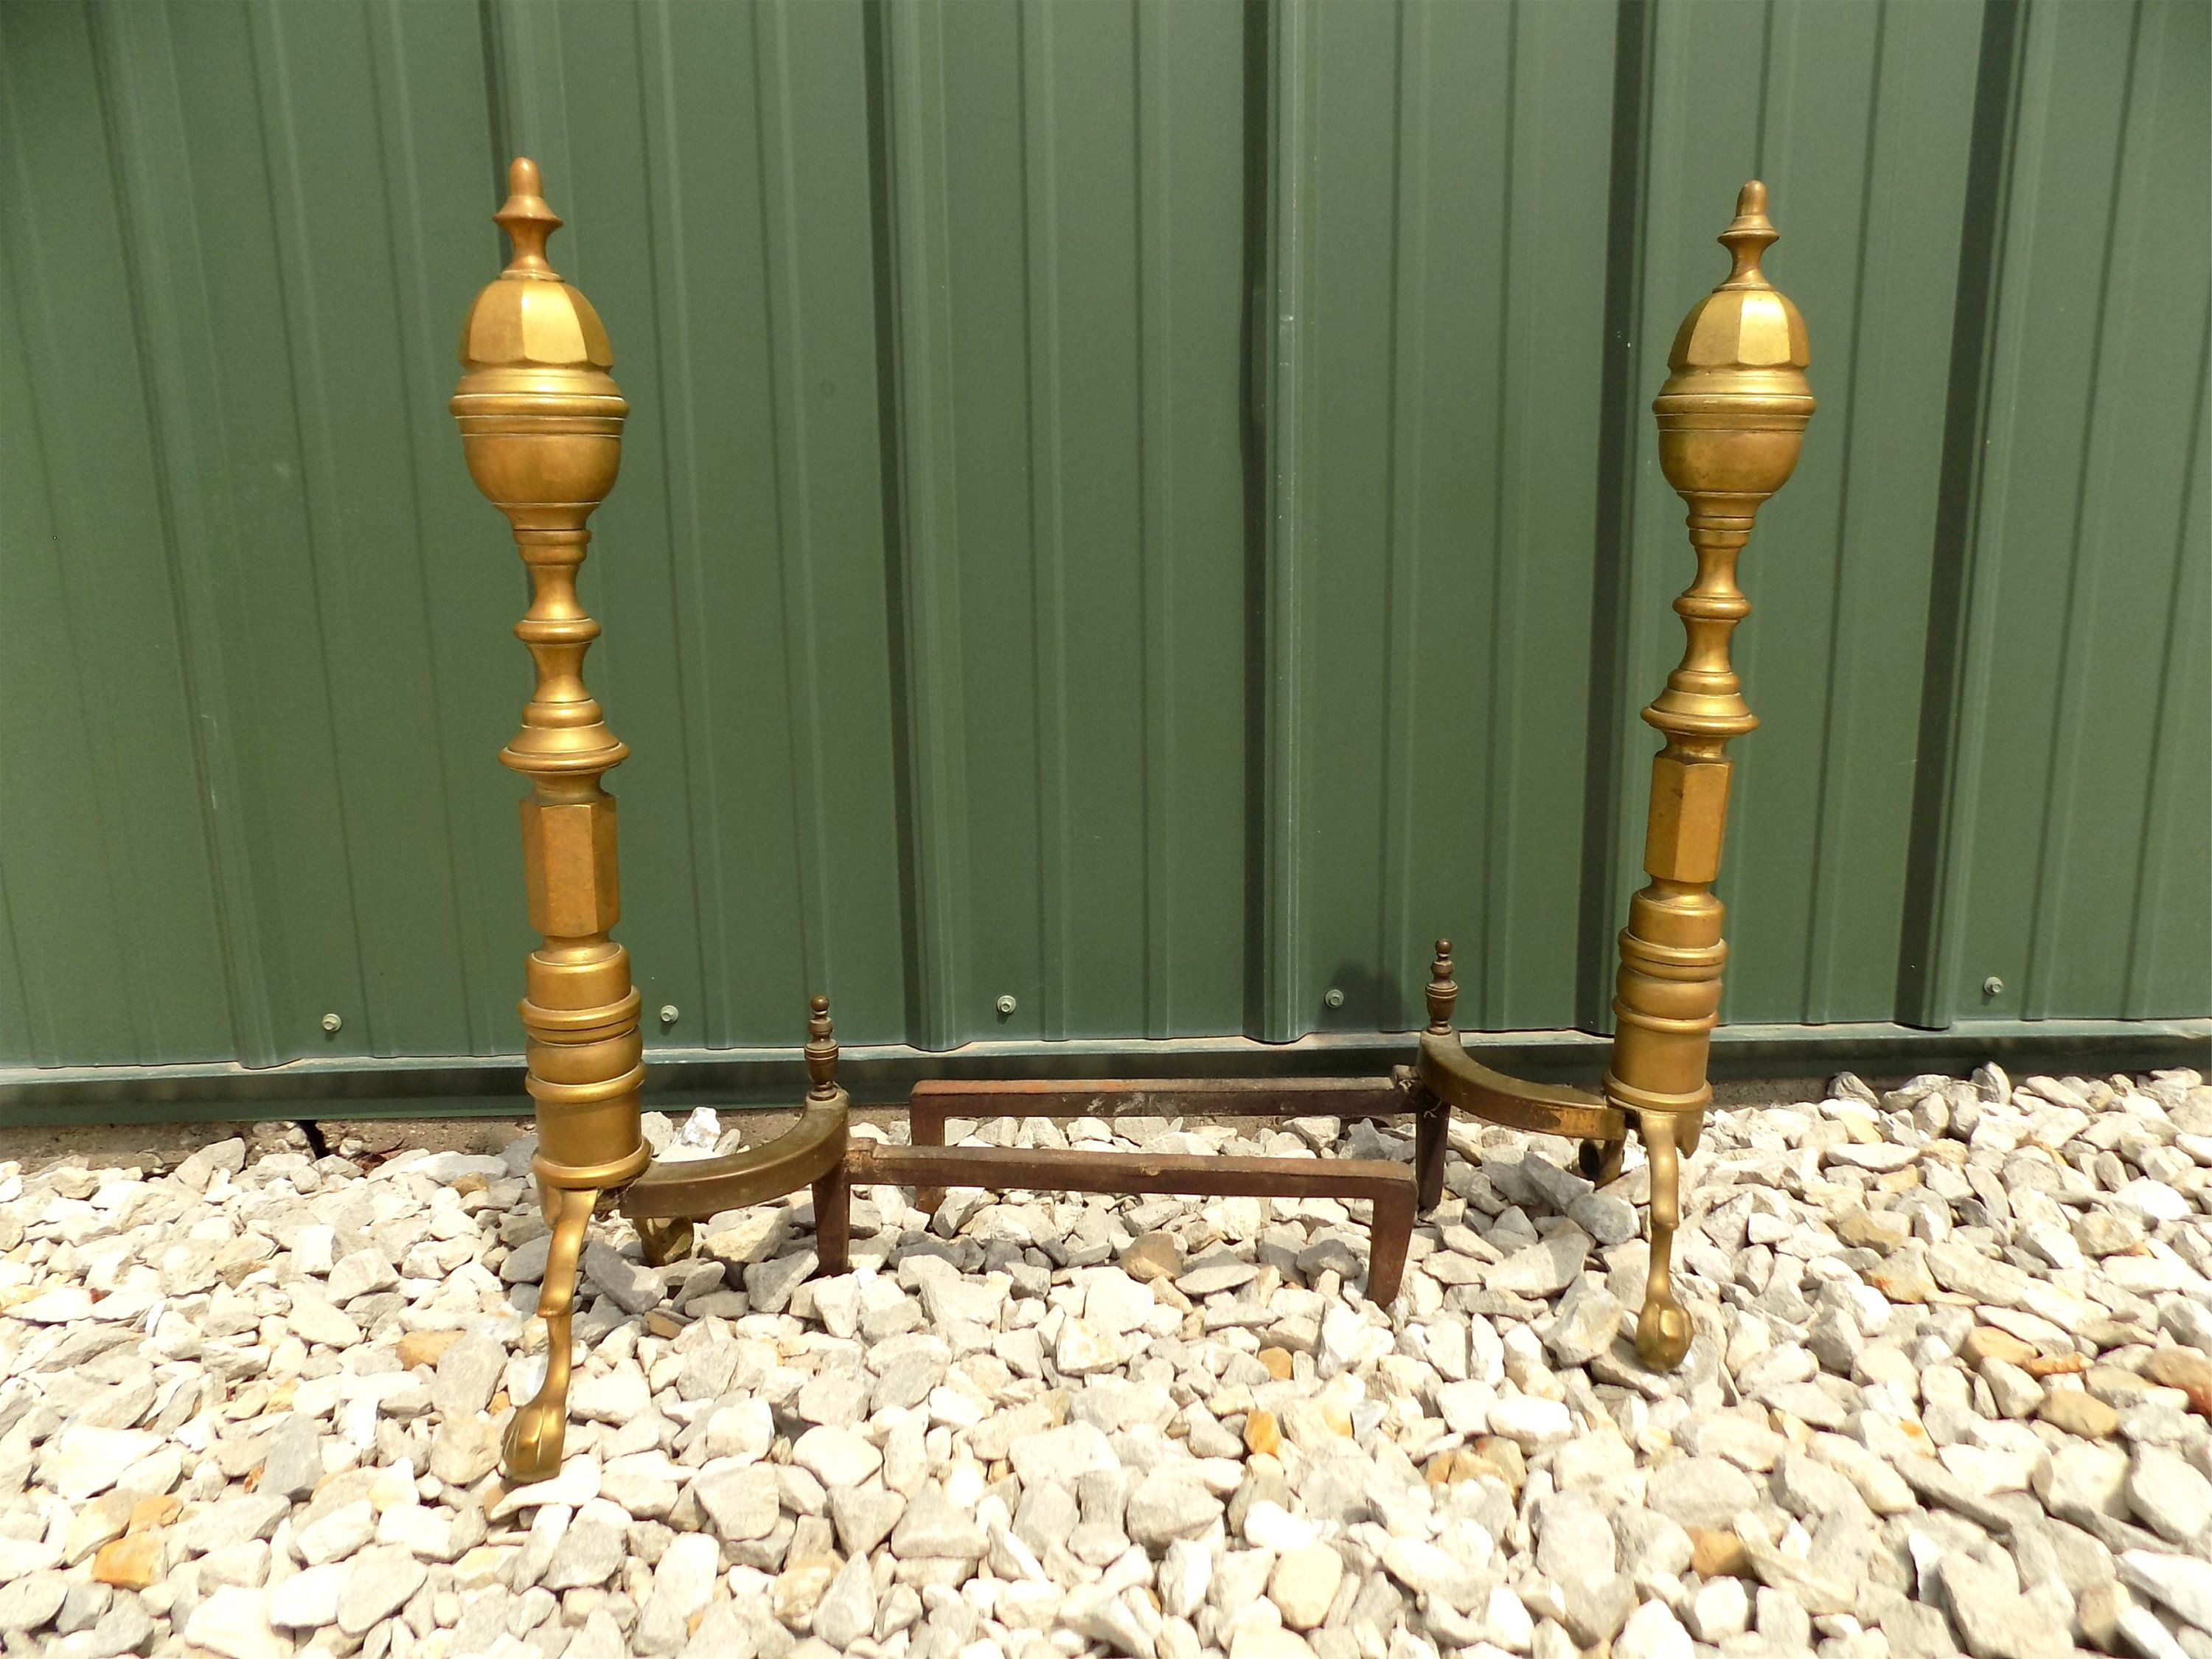 2 Brass Finial Fireplace Andirons Chenets Fire Dogs Decorative Vintage Tools B Vintage Fireplace Tools Vin Fireplace Andirons Vintage Fireplace Vintage Tools